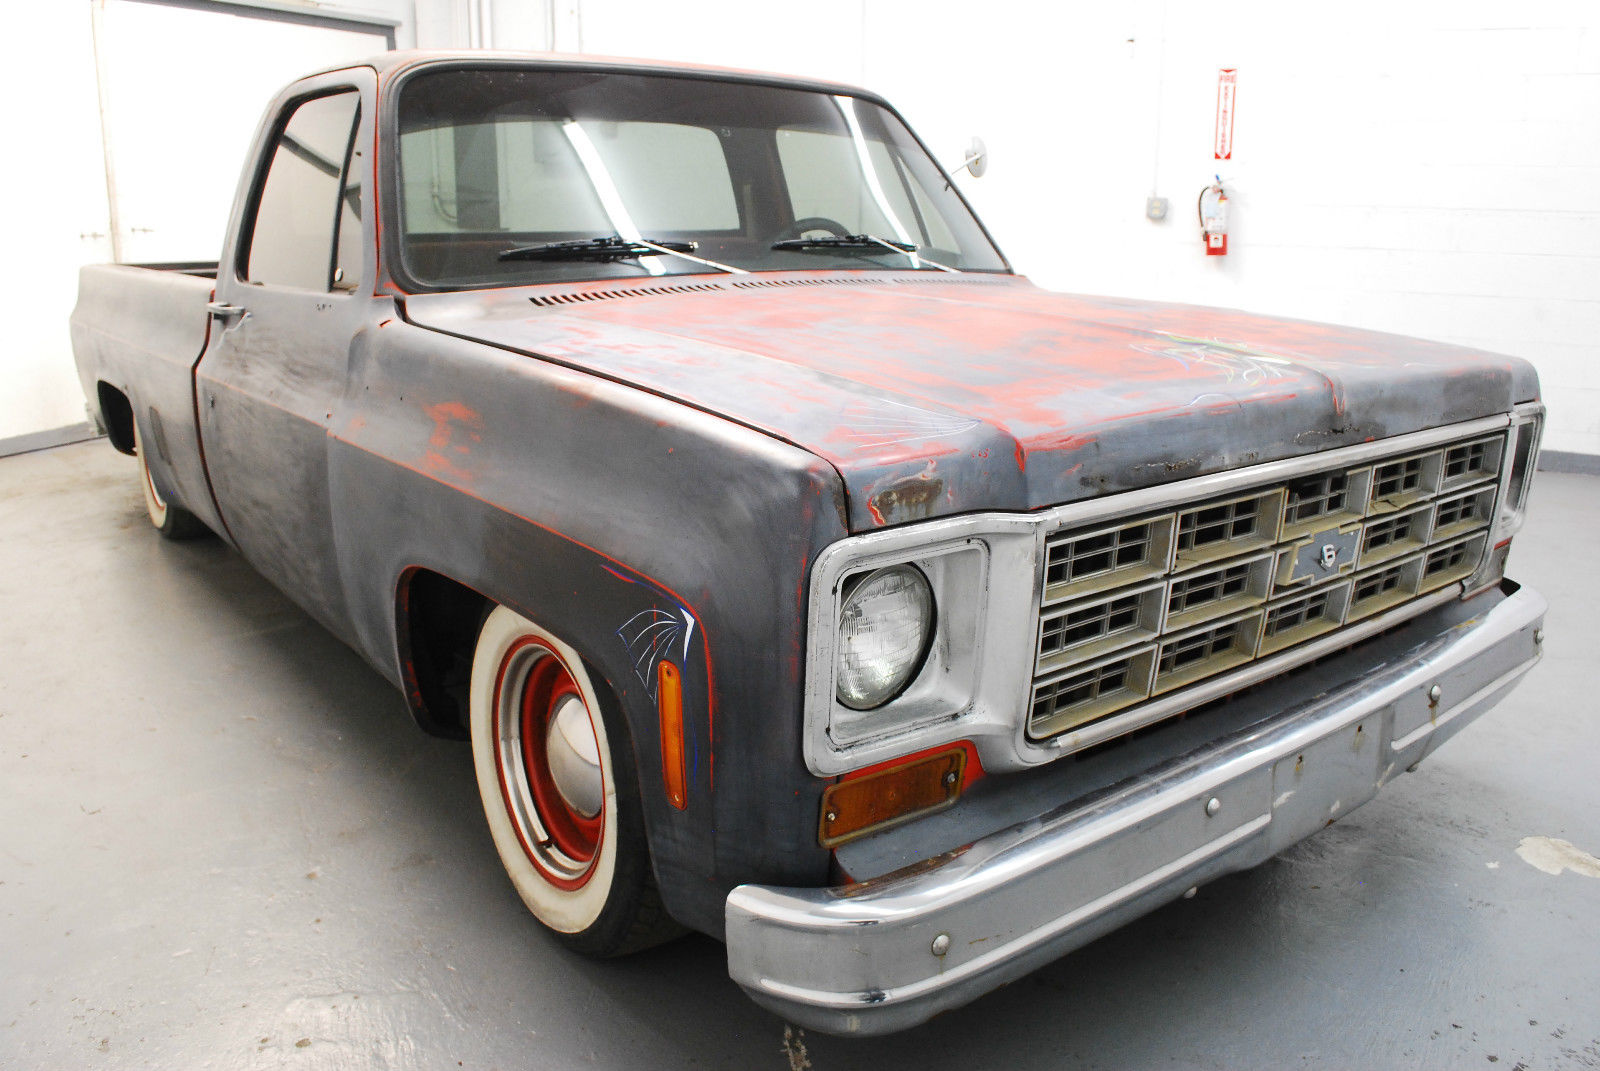 1977 Chevrolet C-10-  							 							show original title